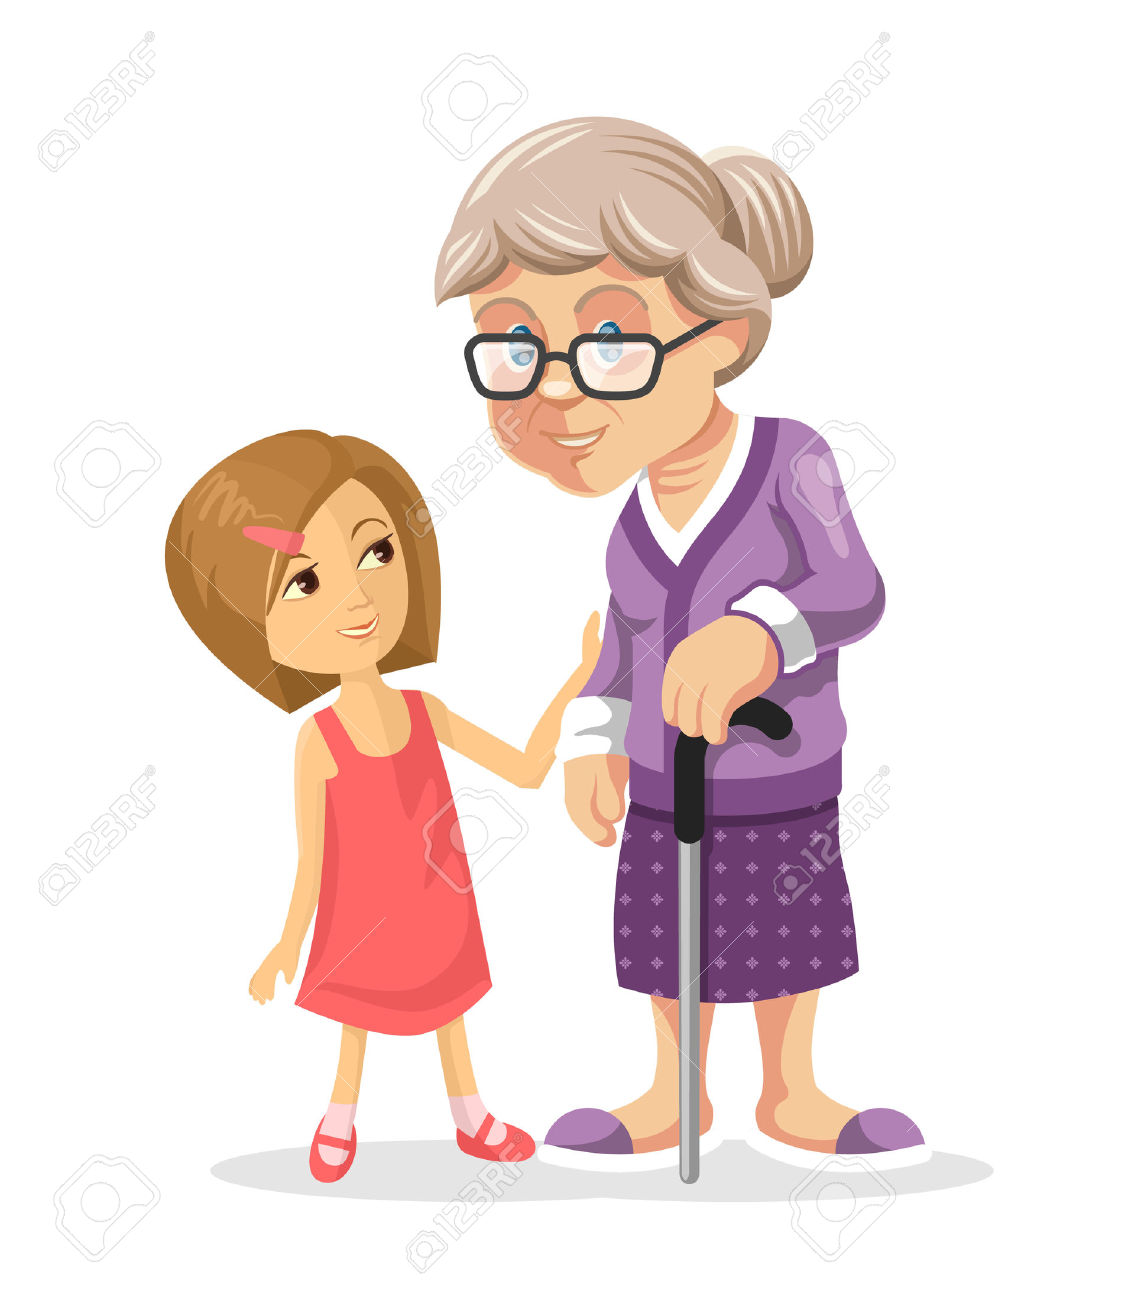 Free granddaughter clipart.